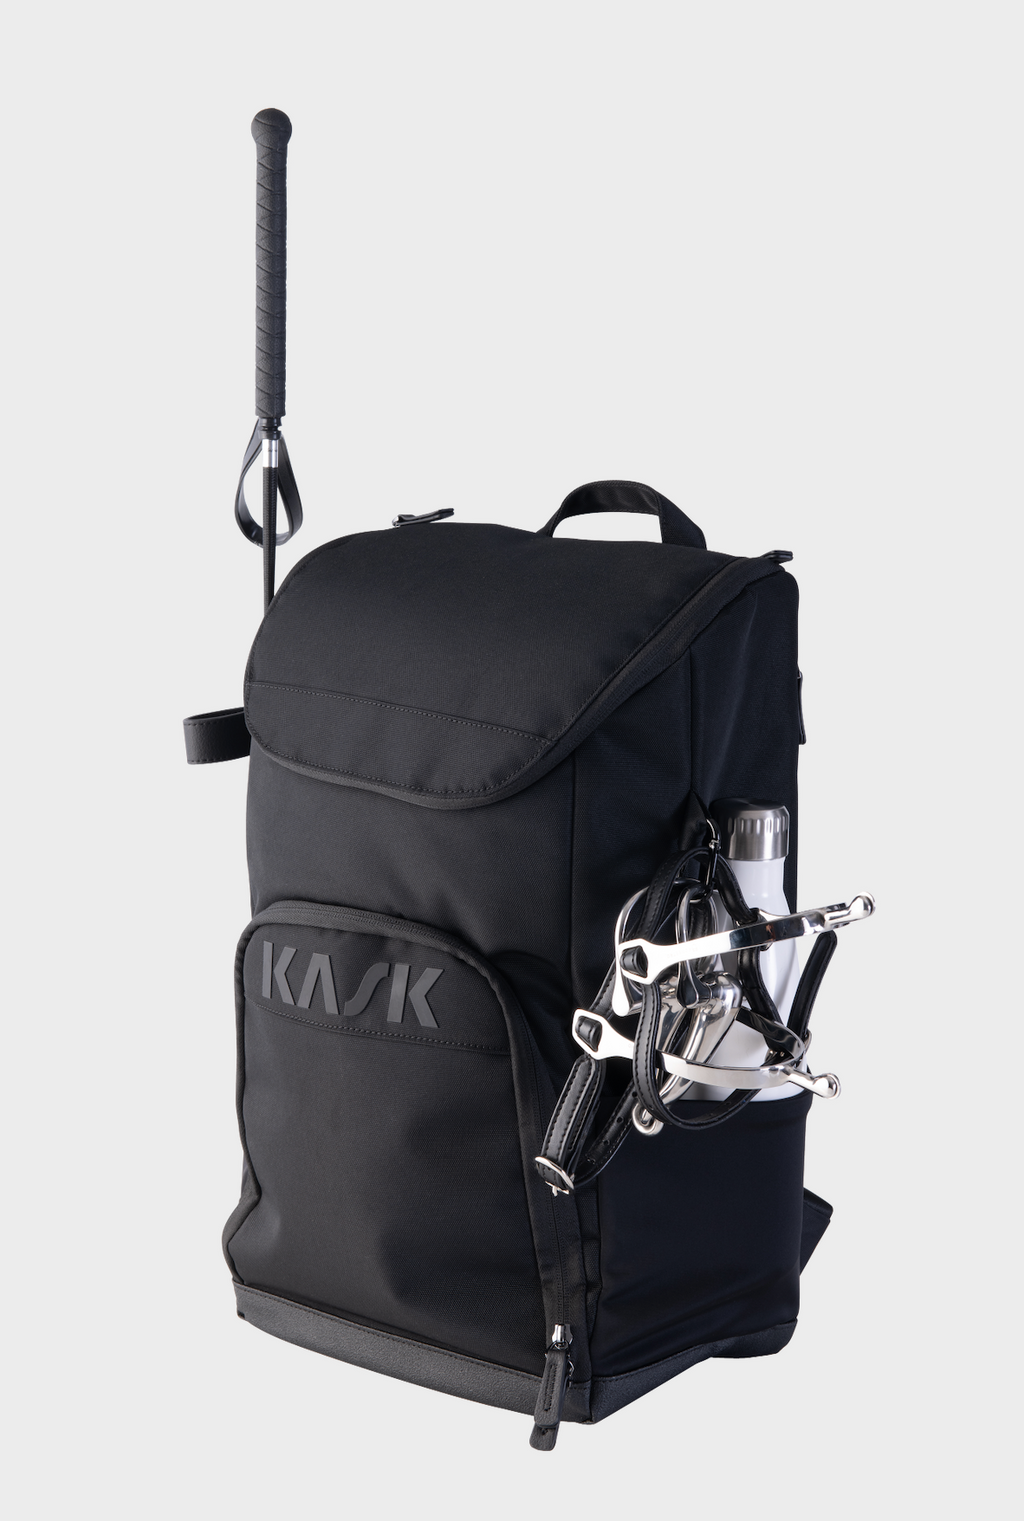 KASK Equestrian Backpack